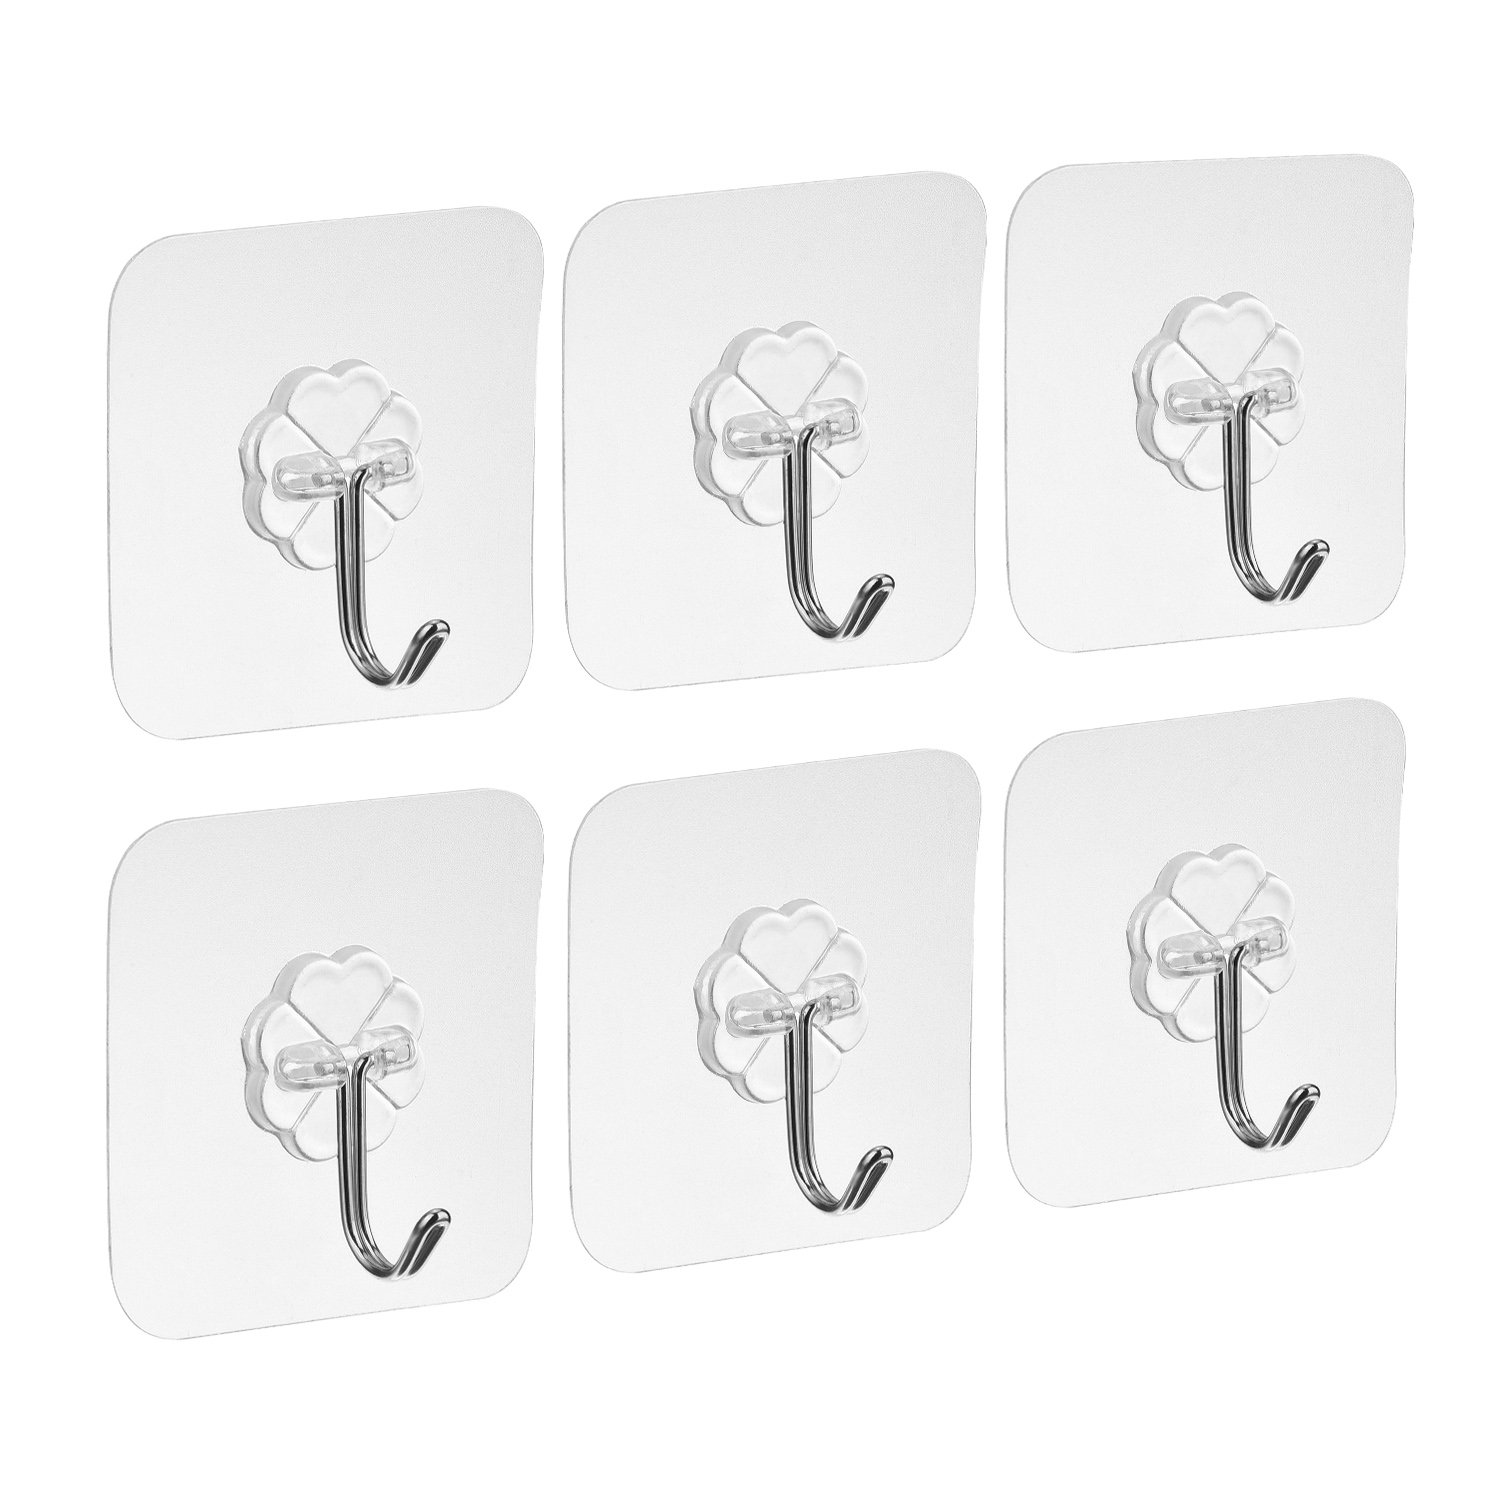 Willbond Adhesive Wall Hooks Nail Free Transparent Hooks for Kitchen Bathroom Door Ceiling Hanger (6 Pack)